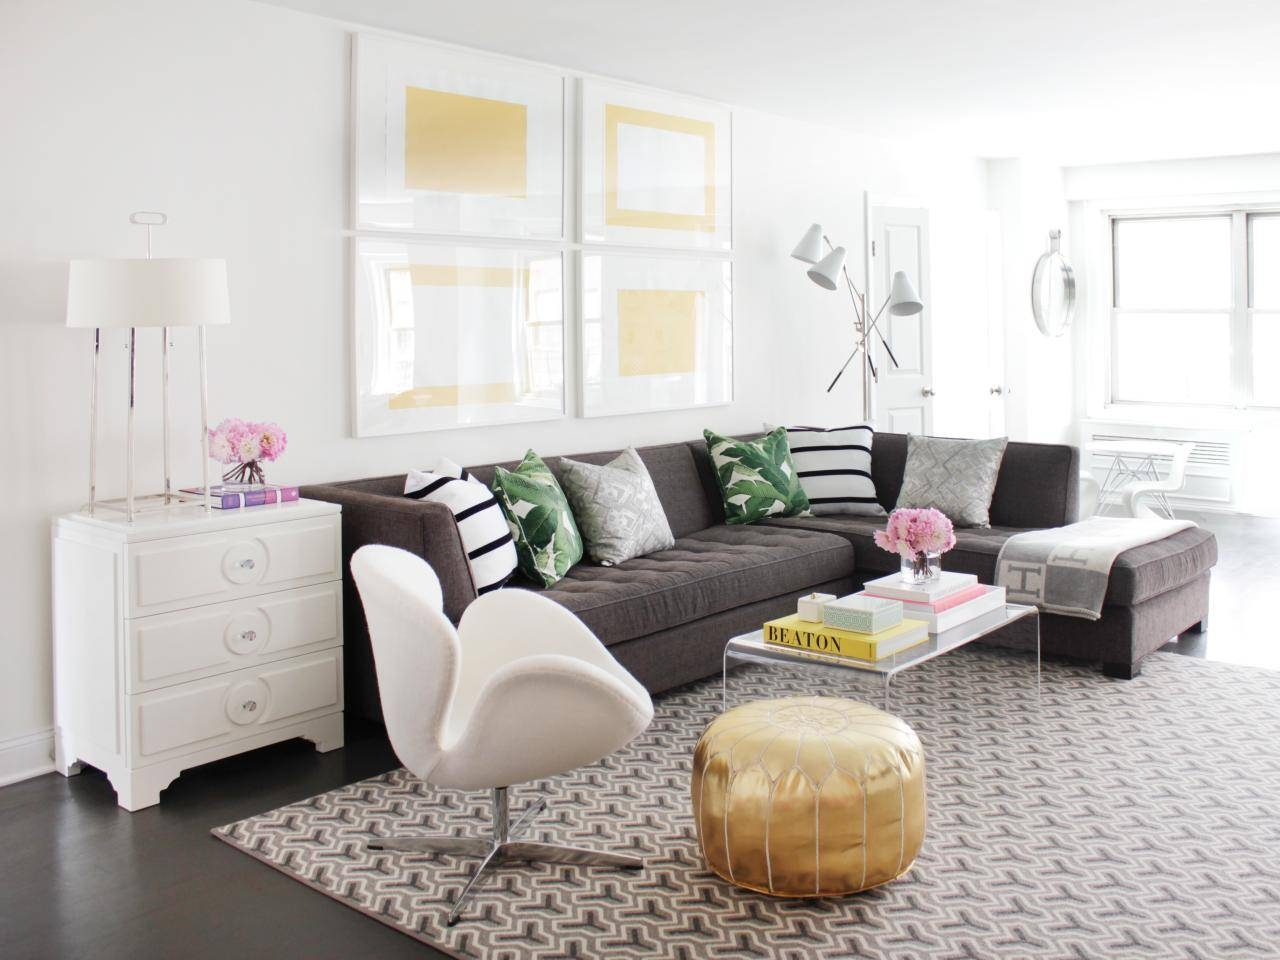 12 Living Room Ideas For A Grey Sectional | Hgtv's Decorating in Decorating With A Sectional Sofa (Image 1 of 30)